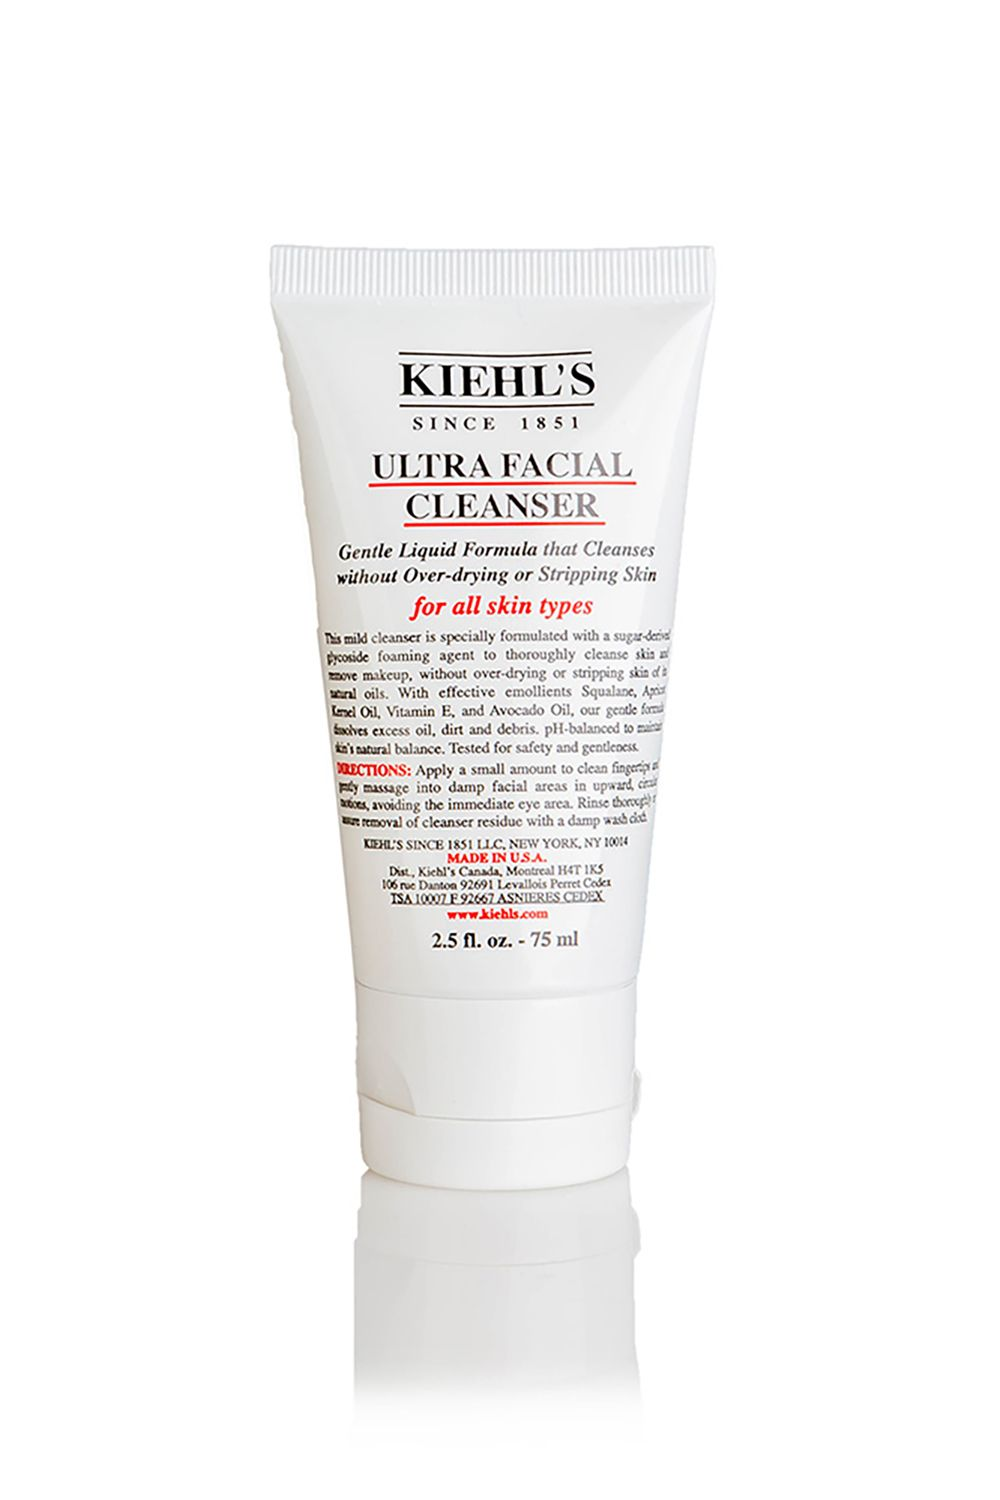 "<p>This 2.5 oz bottle is TSA-approved, and the mild formula is pretty much perfect for all skin types. Basically a win-win.</p><p>Kiehl's Ultra Facial Cleanser, $19.50; <a href=""http://www.kiehls.com/ultra-facial-cleanser/714.html"" target=""_blank"">Kiehls.com</a></p>"